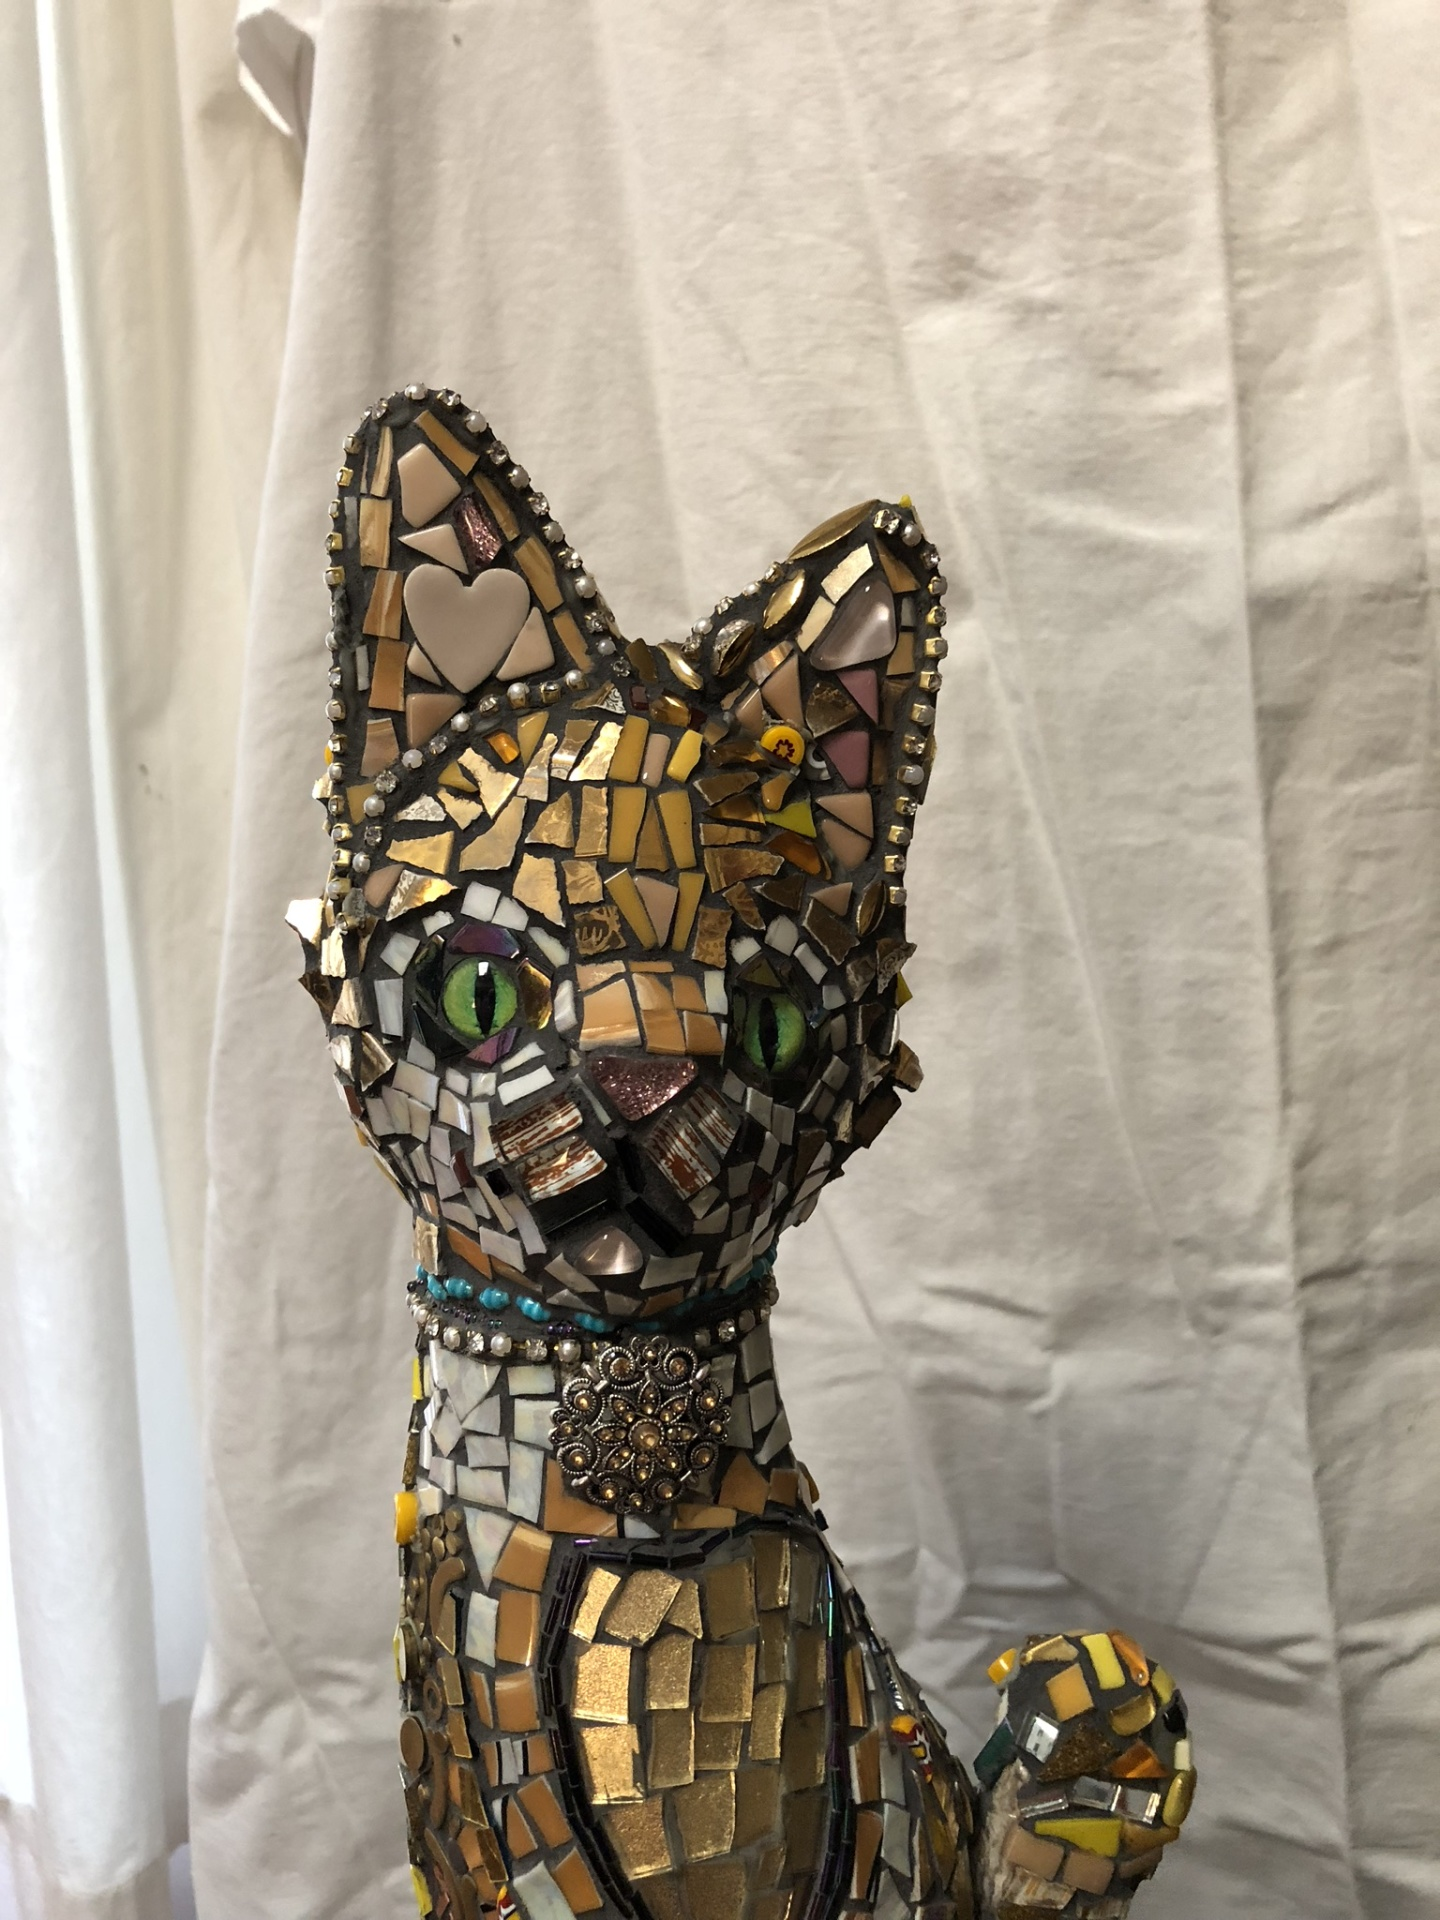 King of the Cats - sculpture